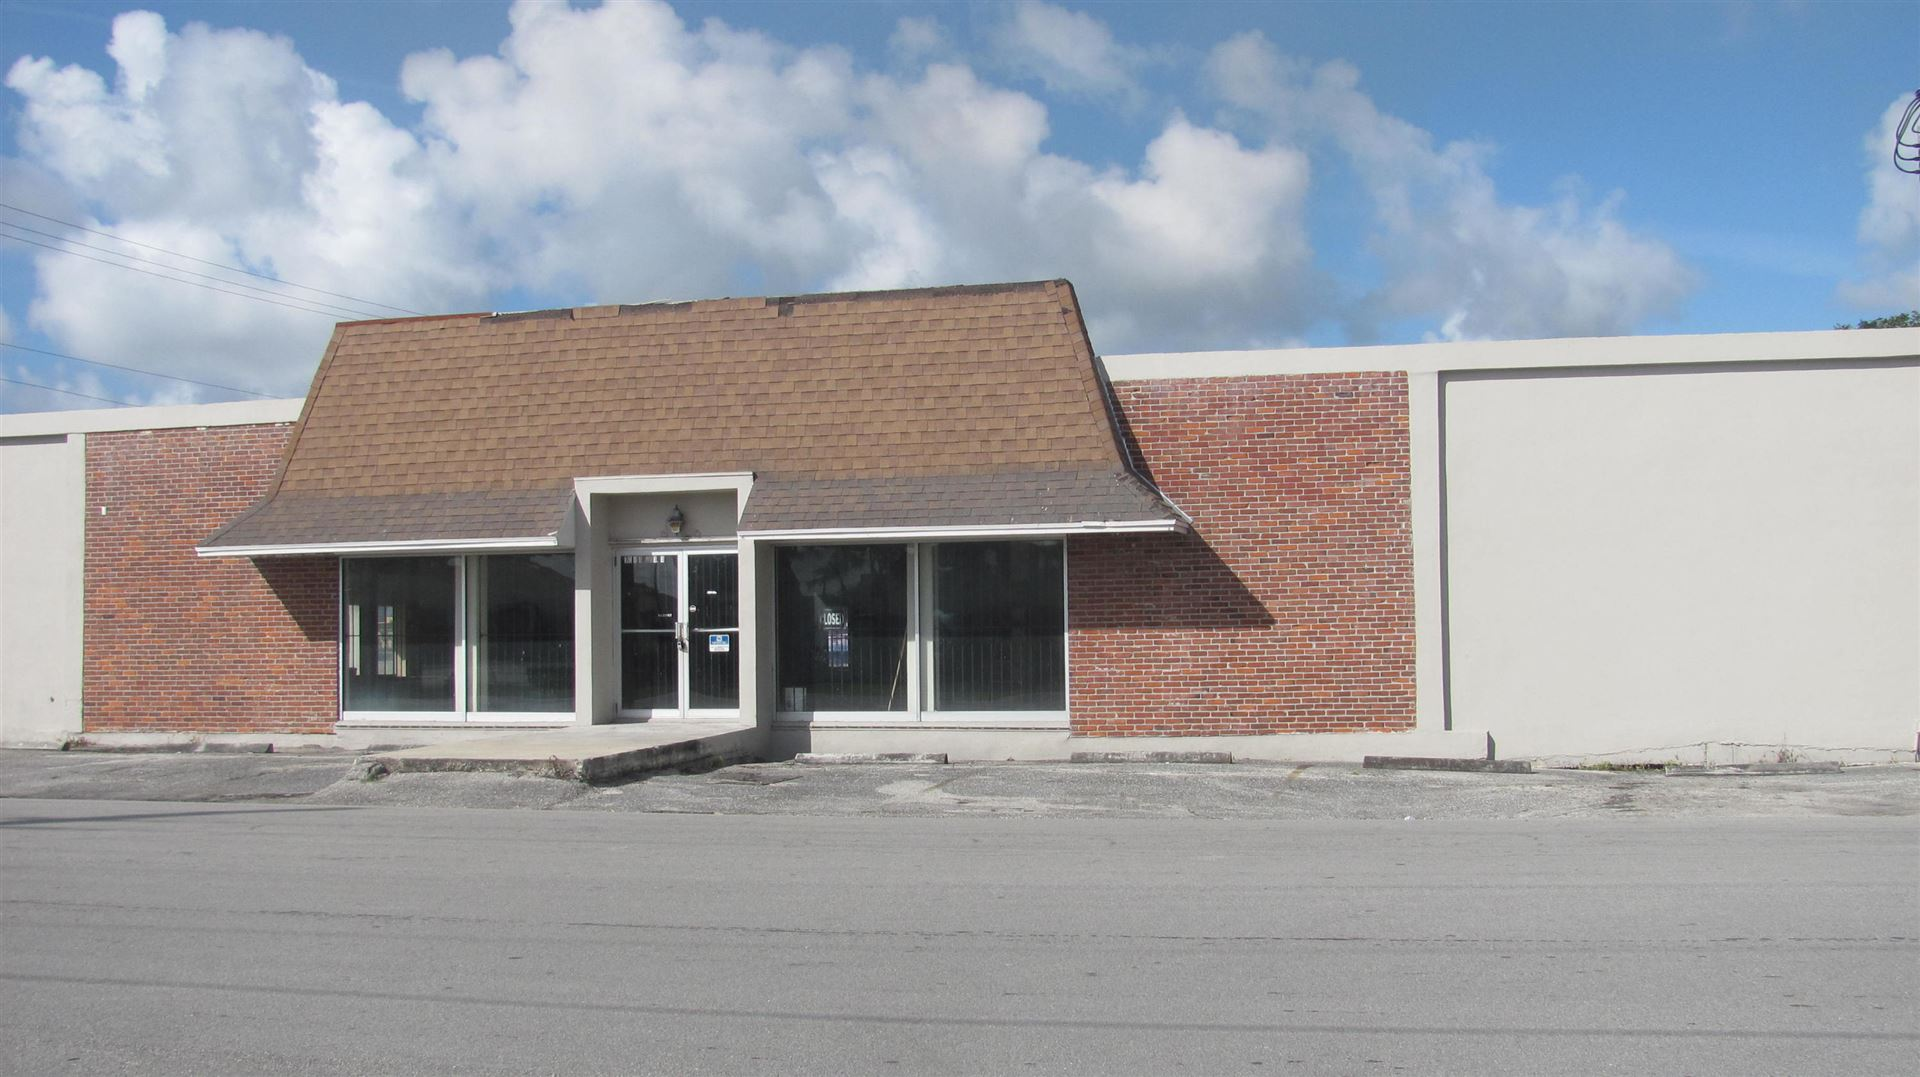 Photo of 73 Dr Martin Luther King Jr Boulevard E, Belle Glade, FL 33430 (MLS # RX-10632811)